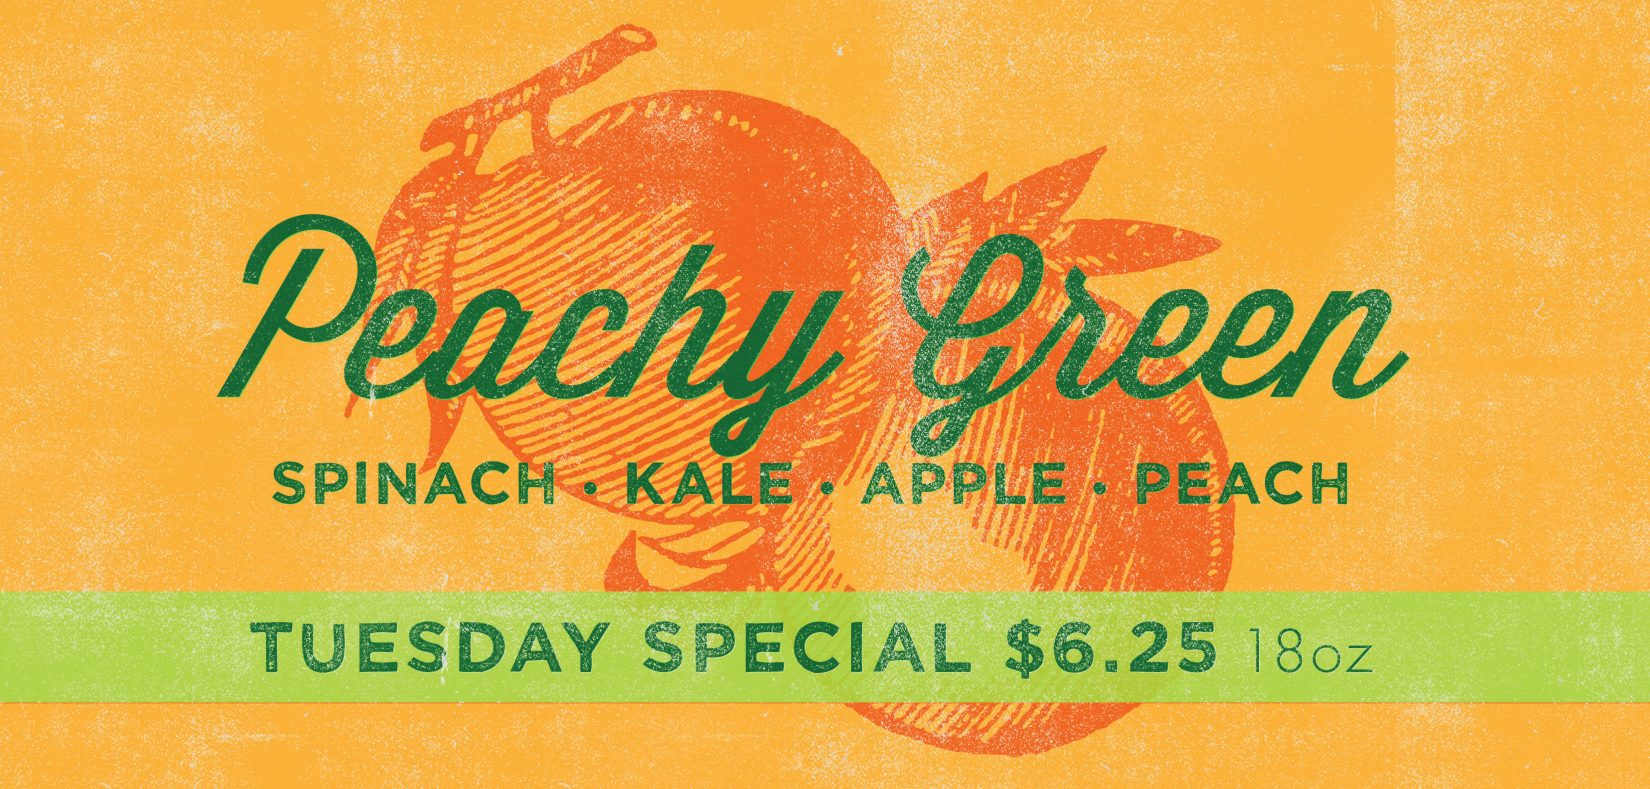 Peachy Green special